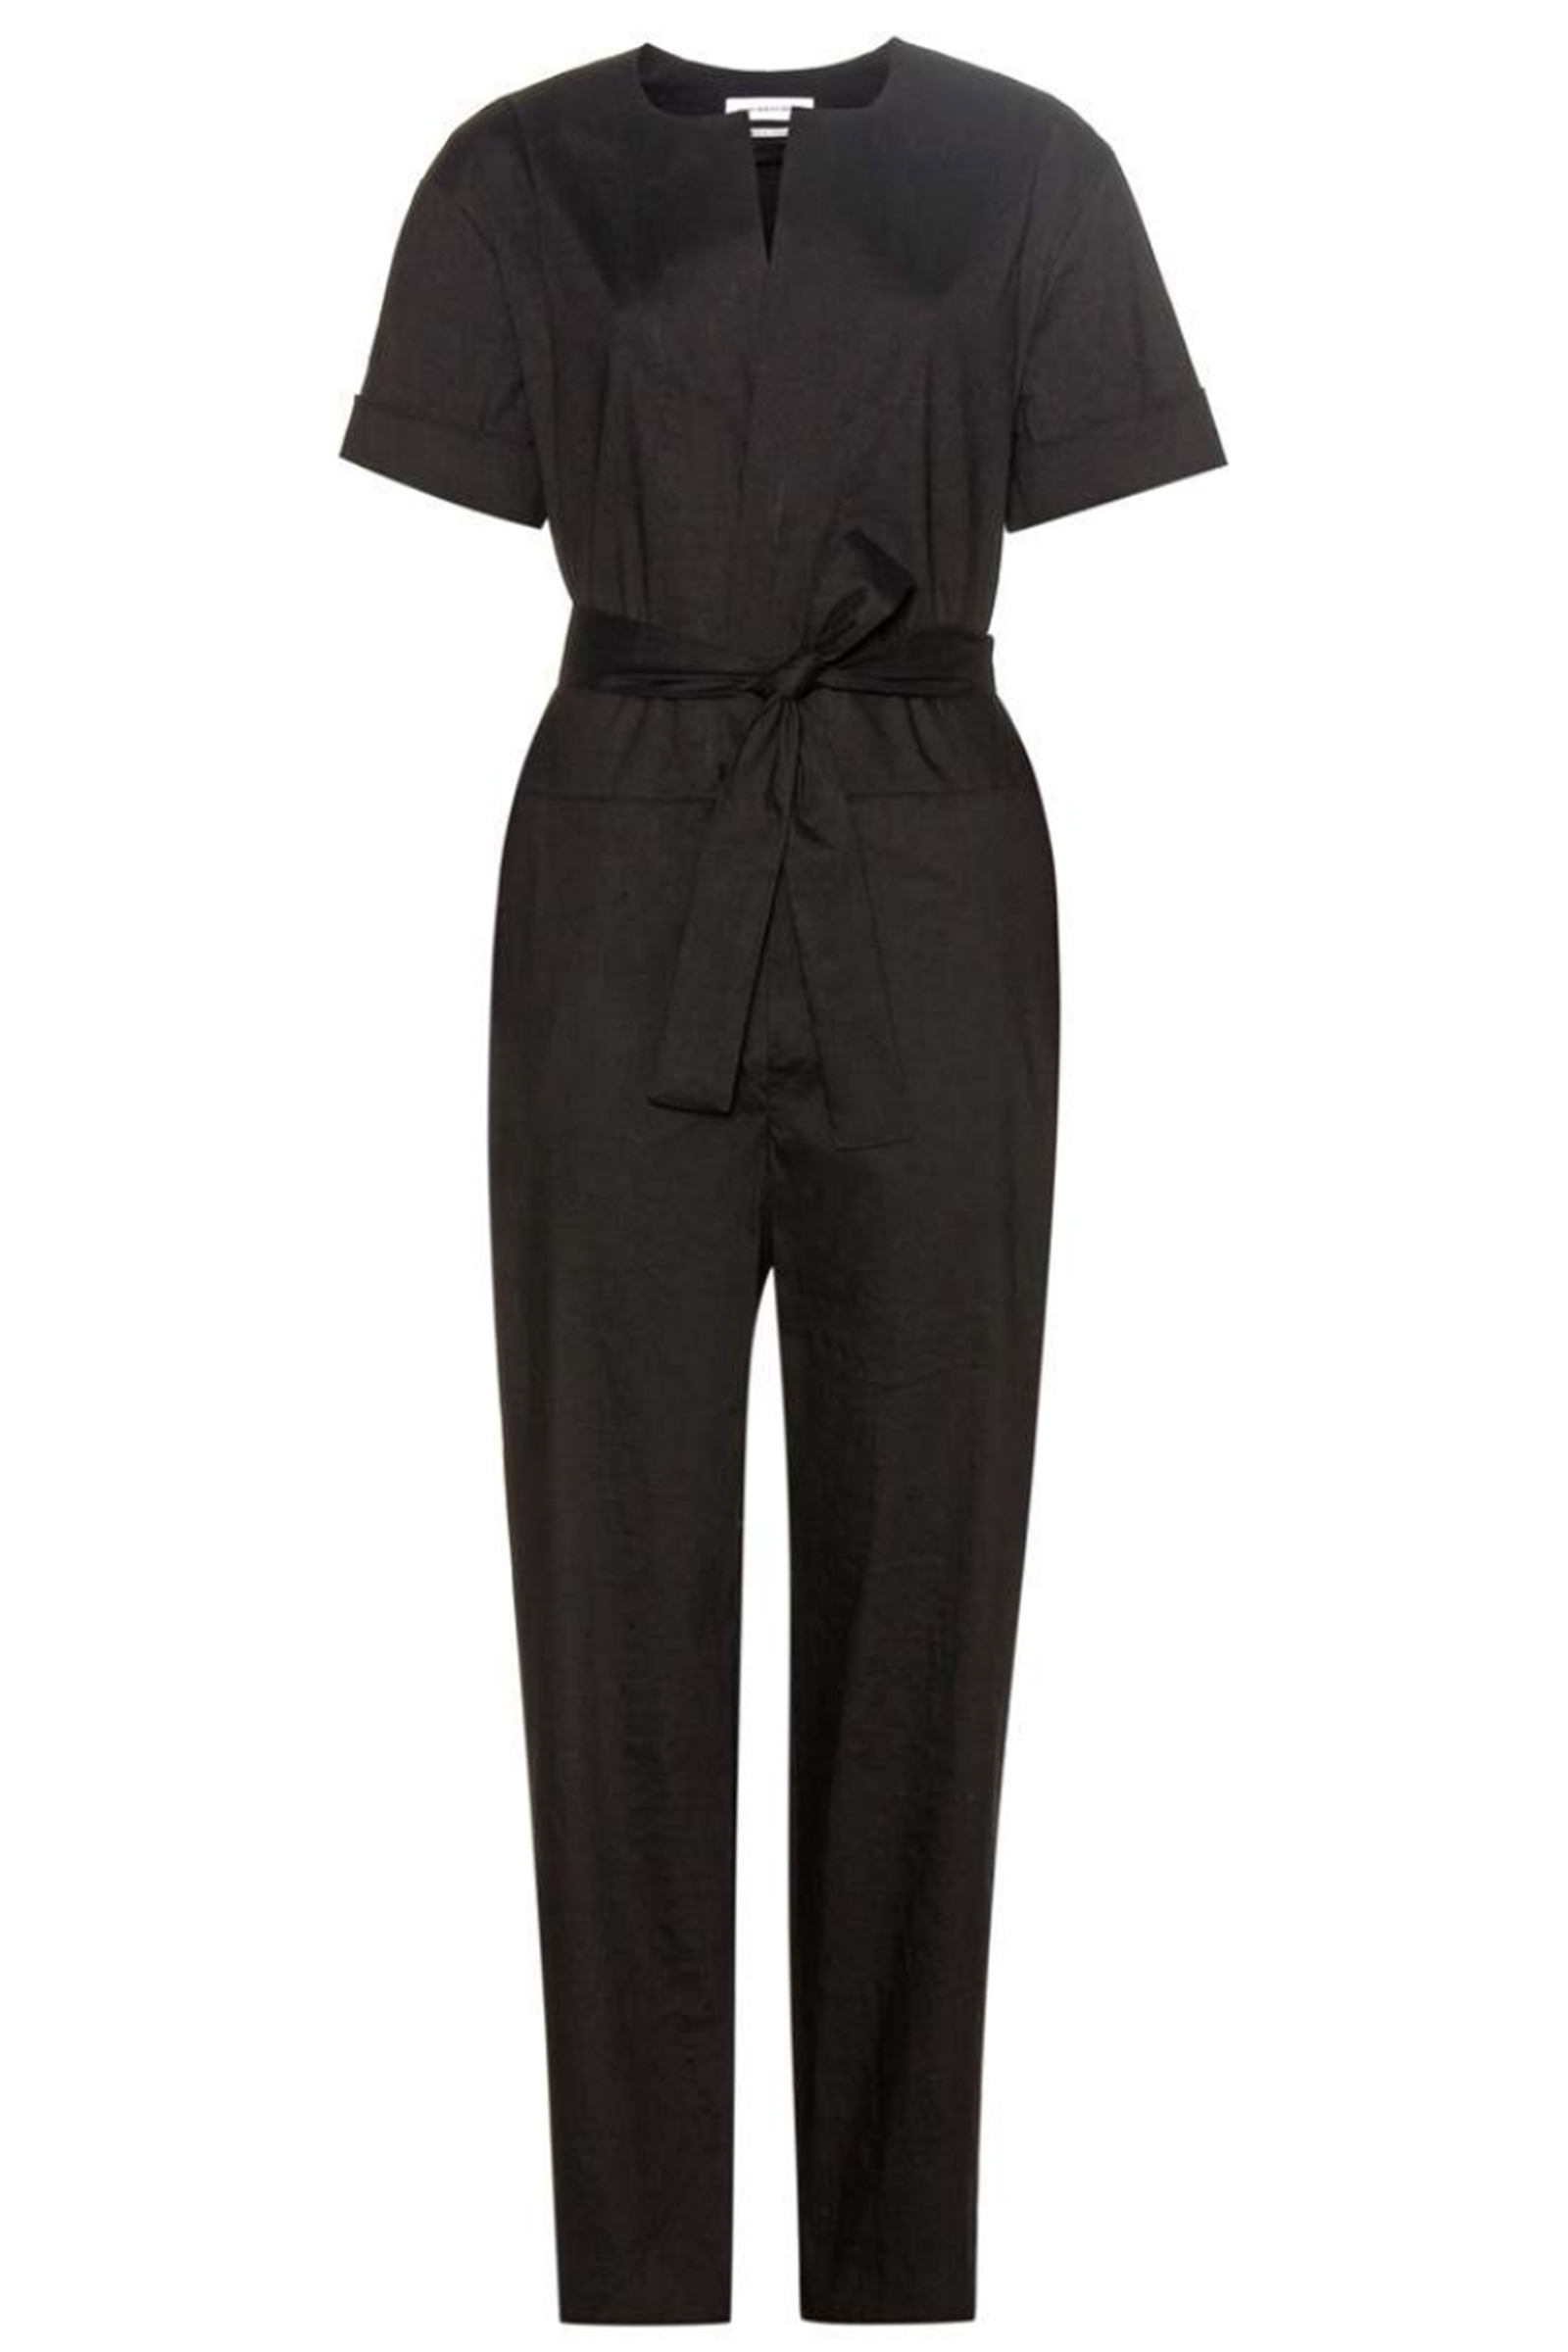 ac59d7cfb046 Buy Isabel Marant Étoile Nadela Cotton-Blend Jumpsuit Online